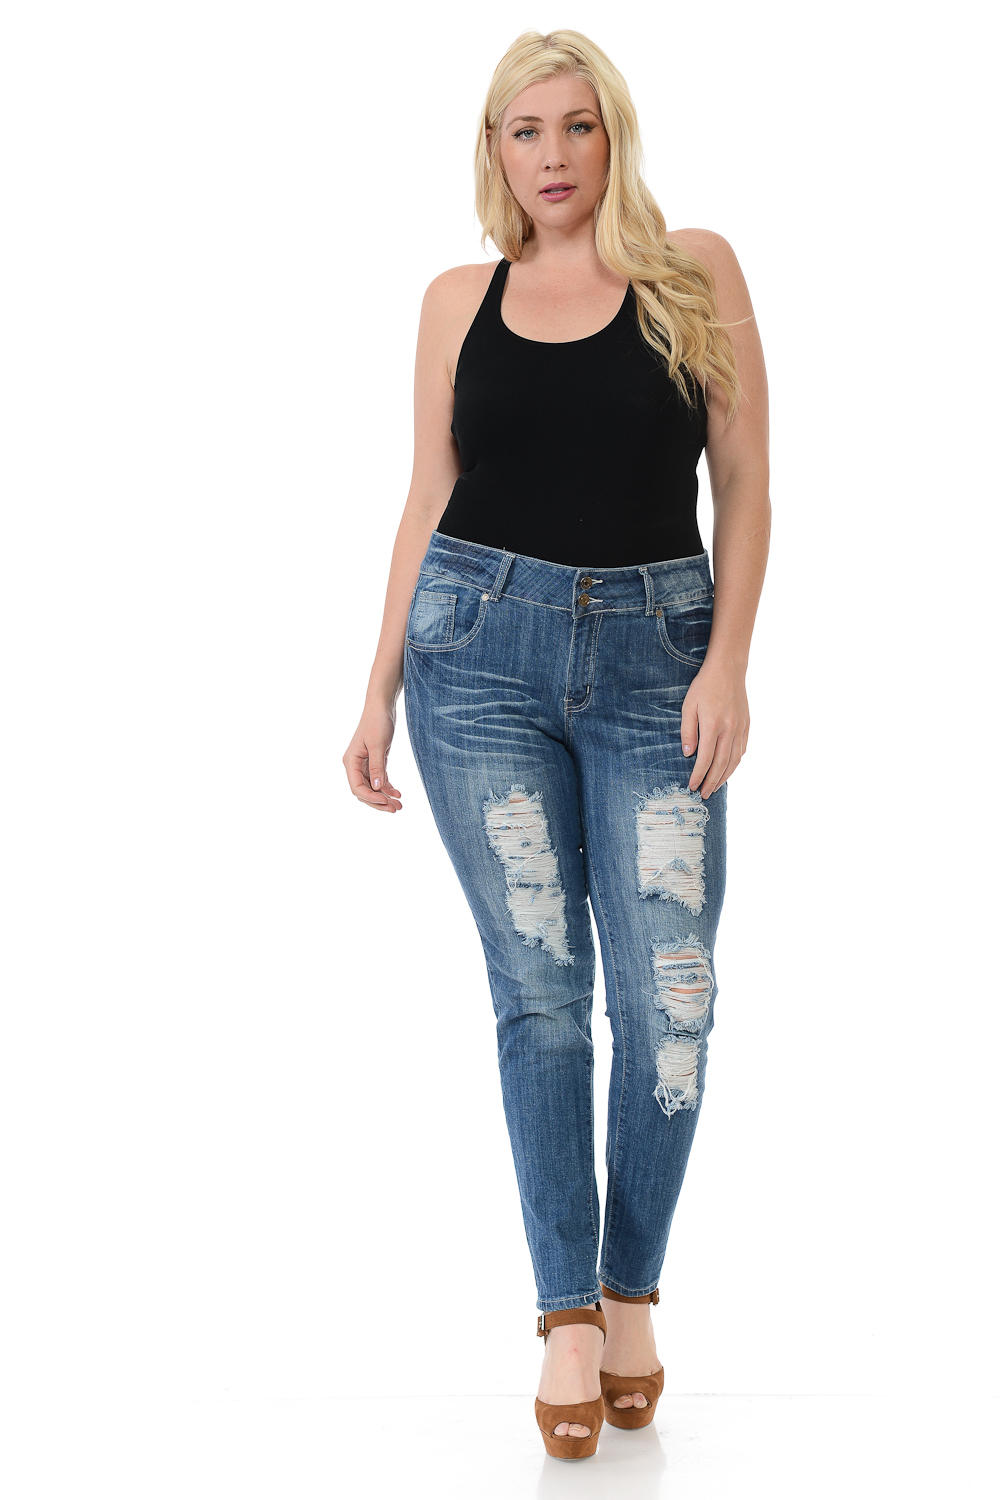 Sweet Look Premium Edition Women's Jeans - Plus Size - High Waist - Skinny - Style N426H